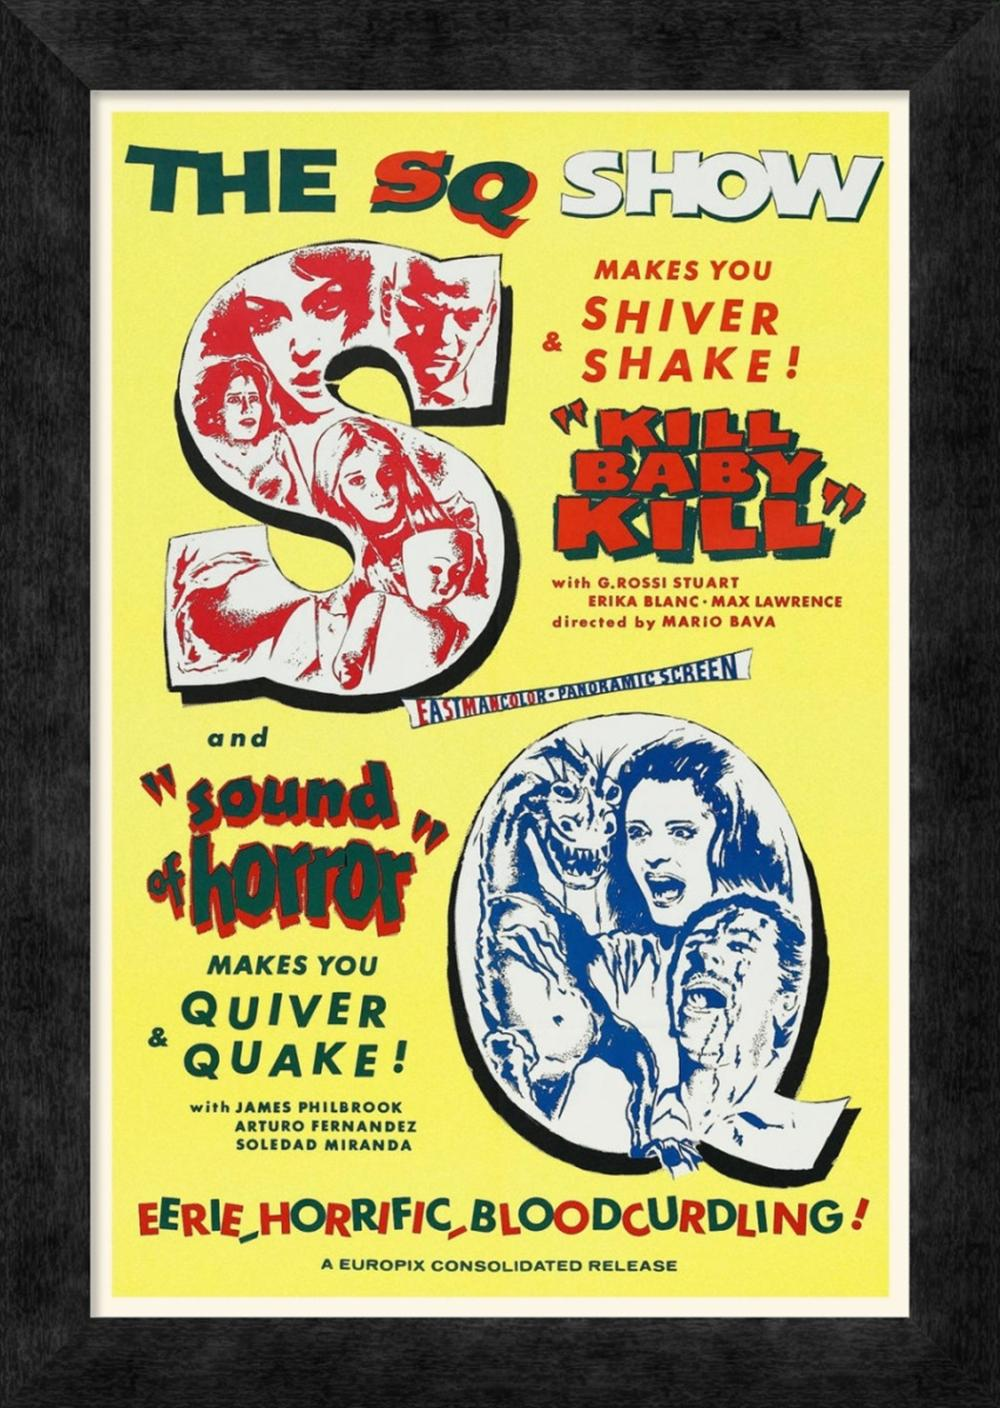 HOLLYWOOD PHOTO ARCHIVE - DOUBLE FEATURE - KILL BABY KILL AND SOUND OF HORROR